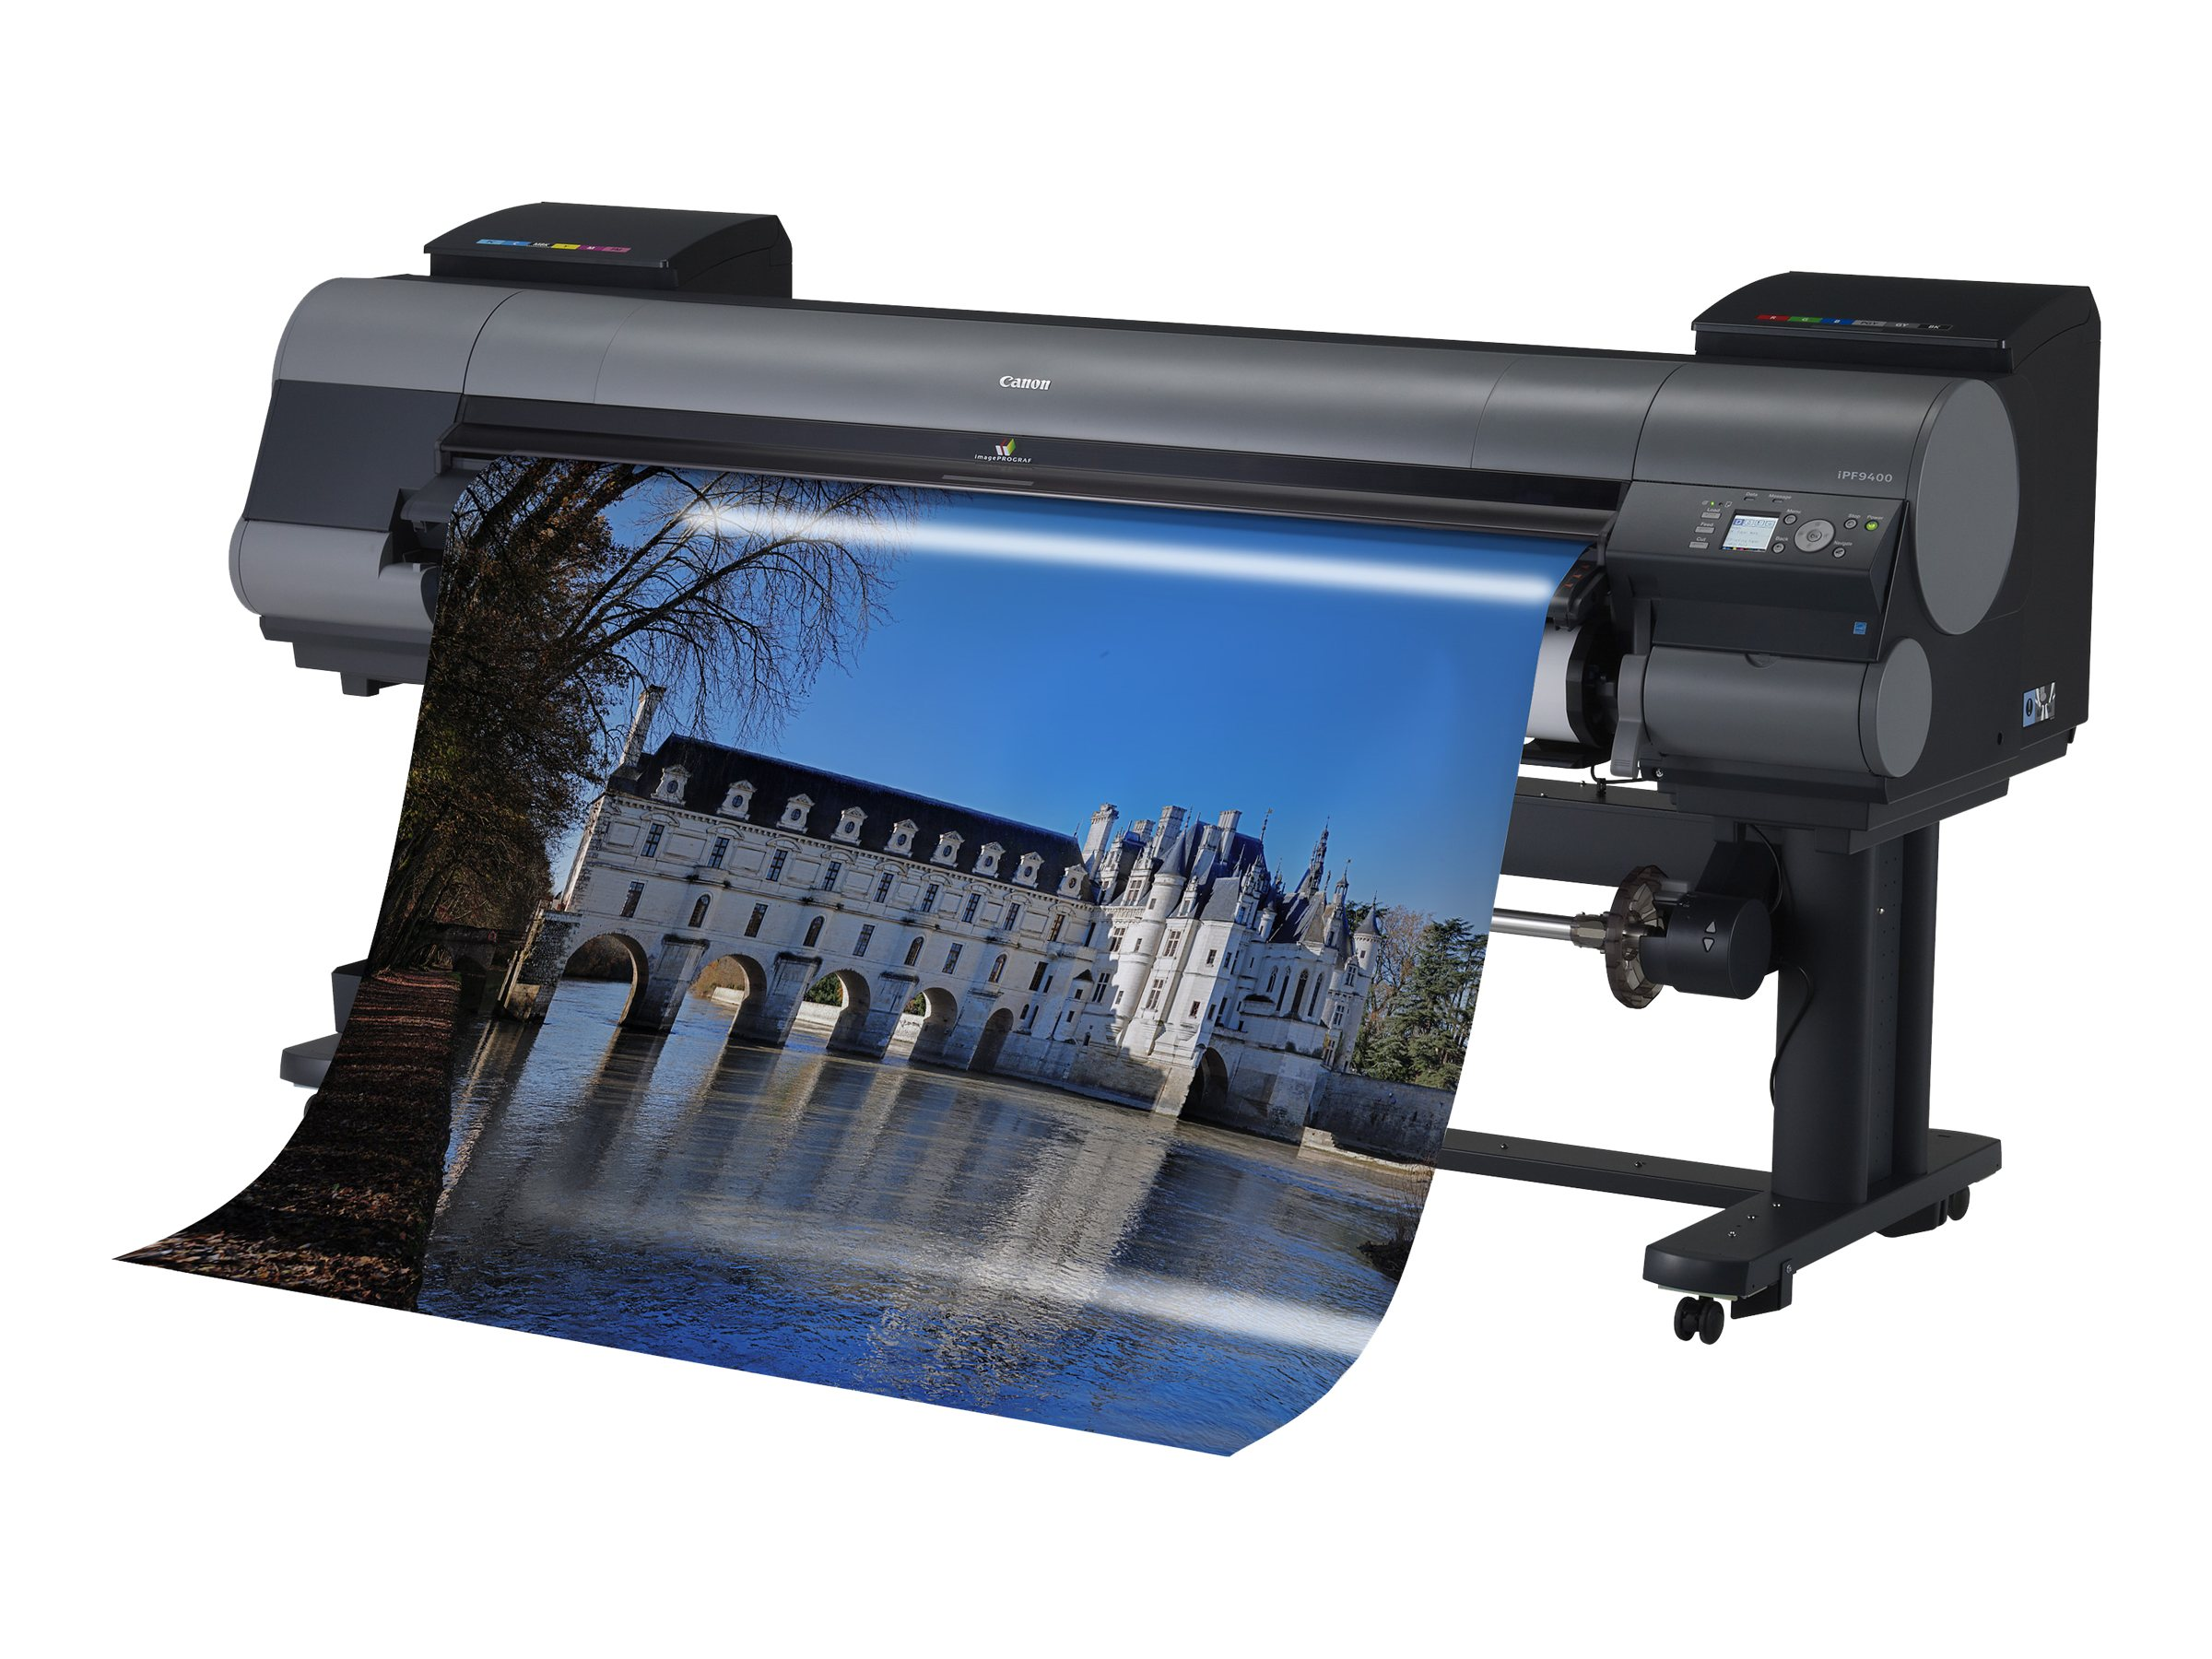 Canon imagePROGRAF iPF9400 Graphic Arts & Photo Printer